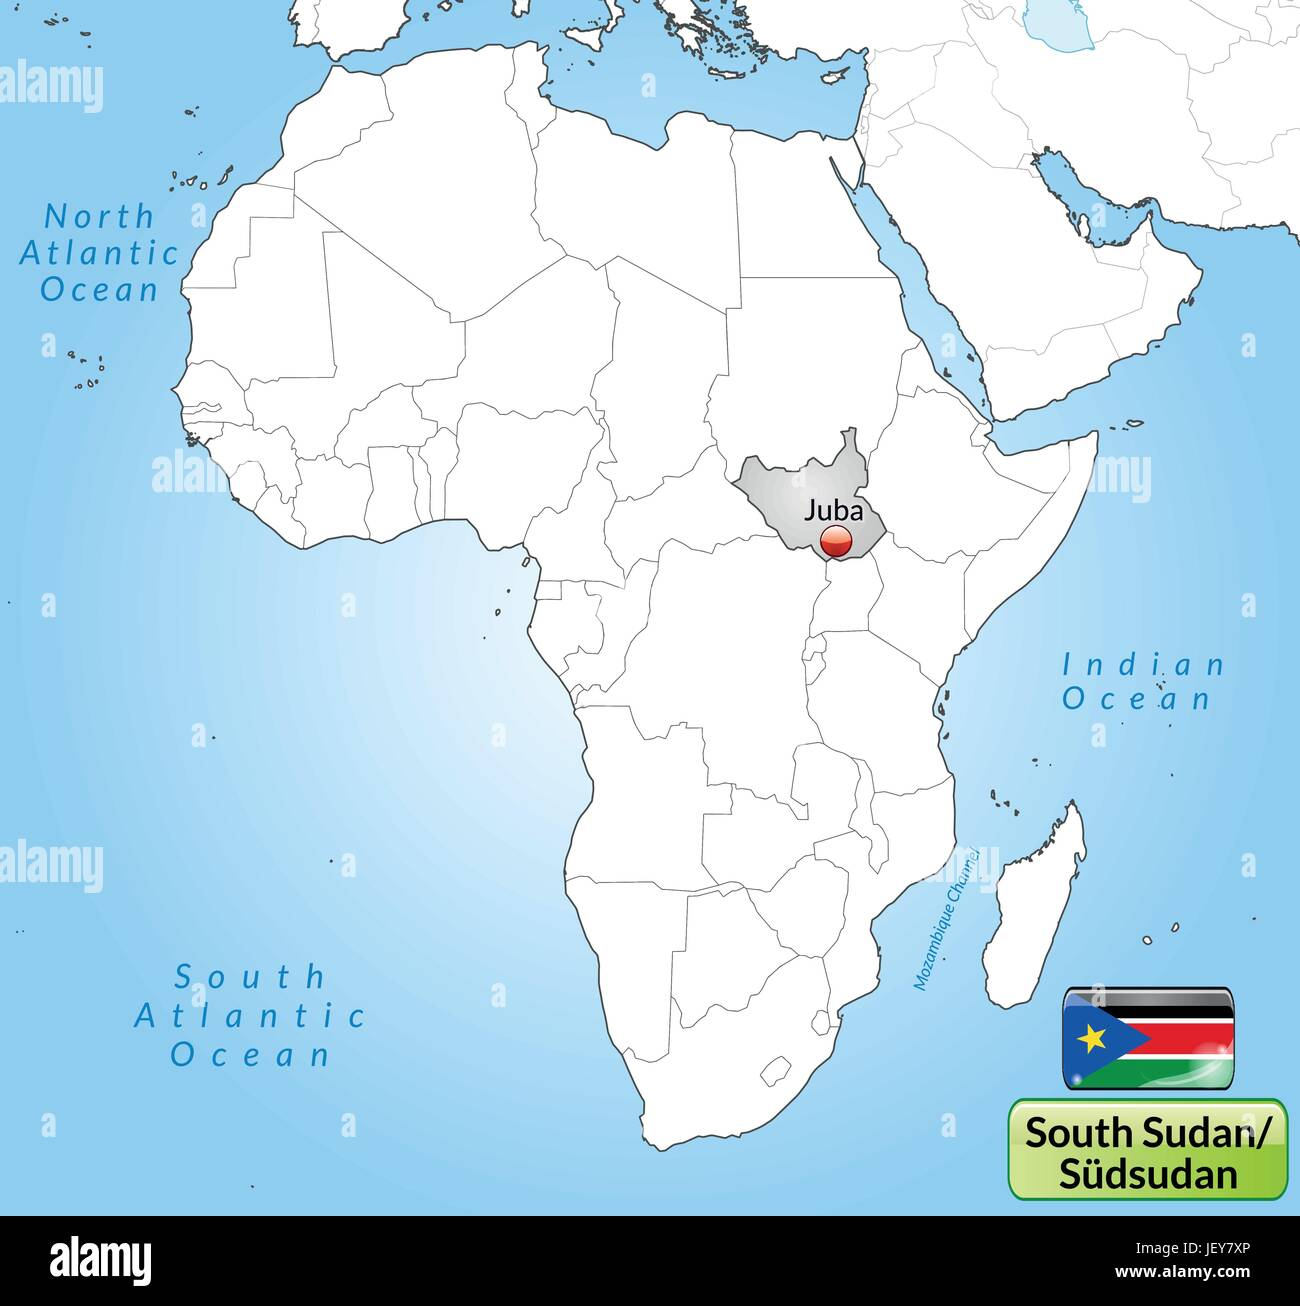 South Sudan Map Stock Photos & South Sudan Map Stock Images - Page 2 ...